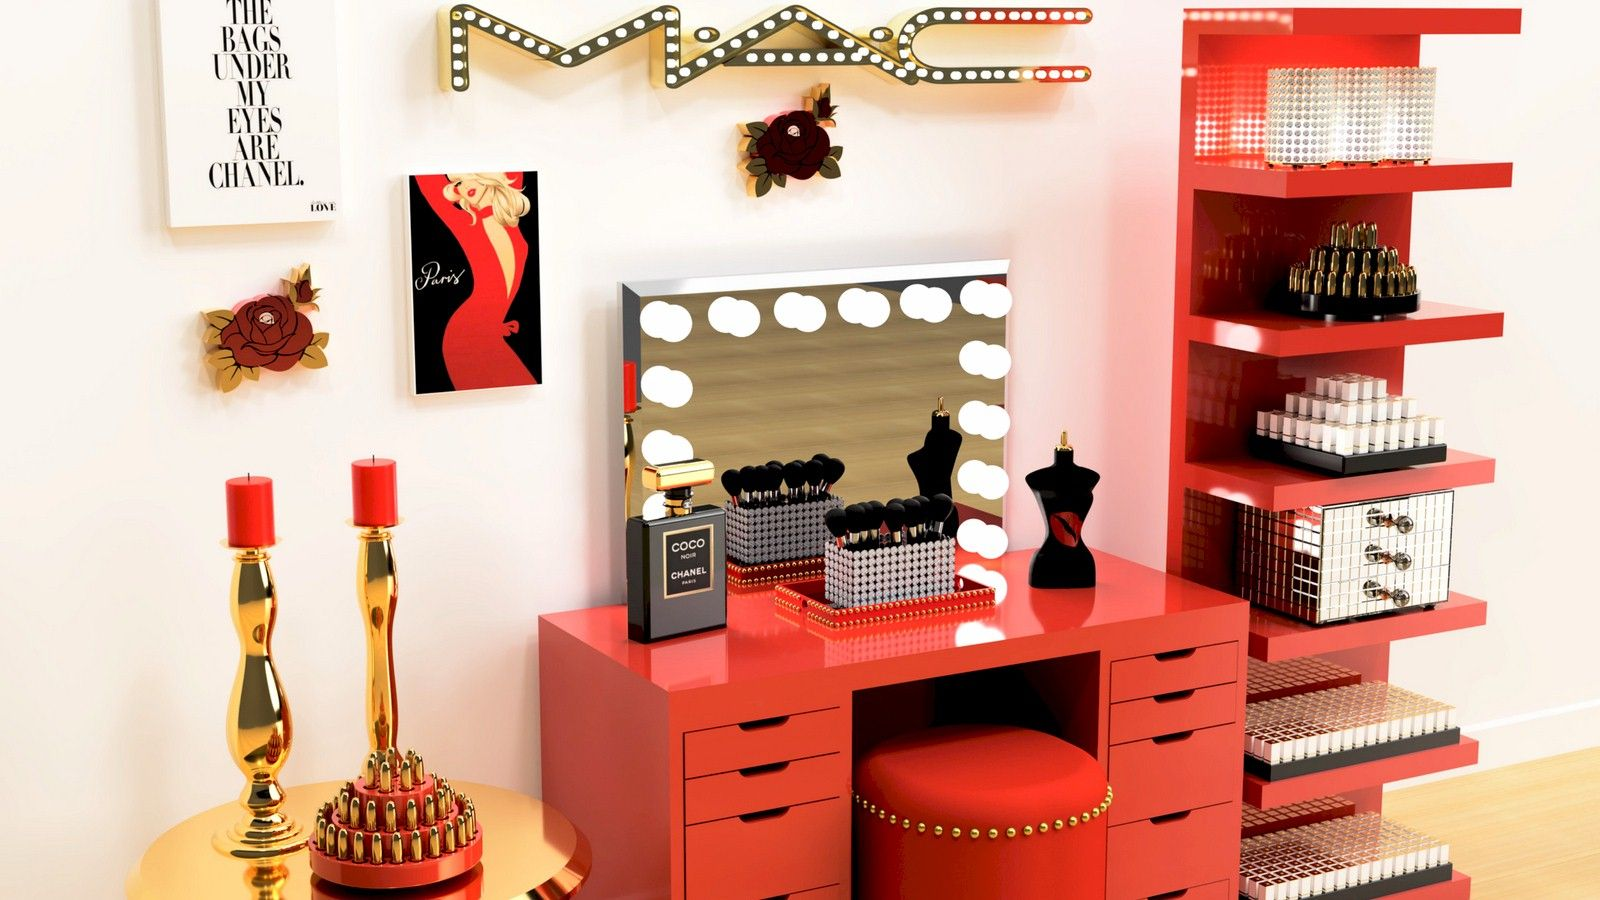 DOWNLOAD The Beauty Room LOOK BOOK For GLAM Home Décor And Makeup Organization images